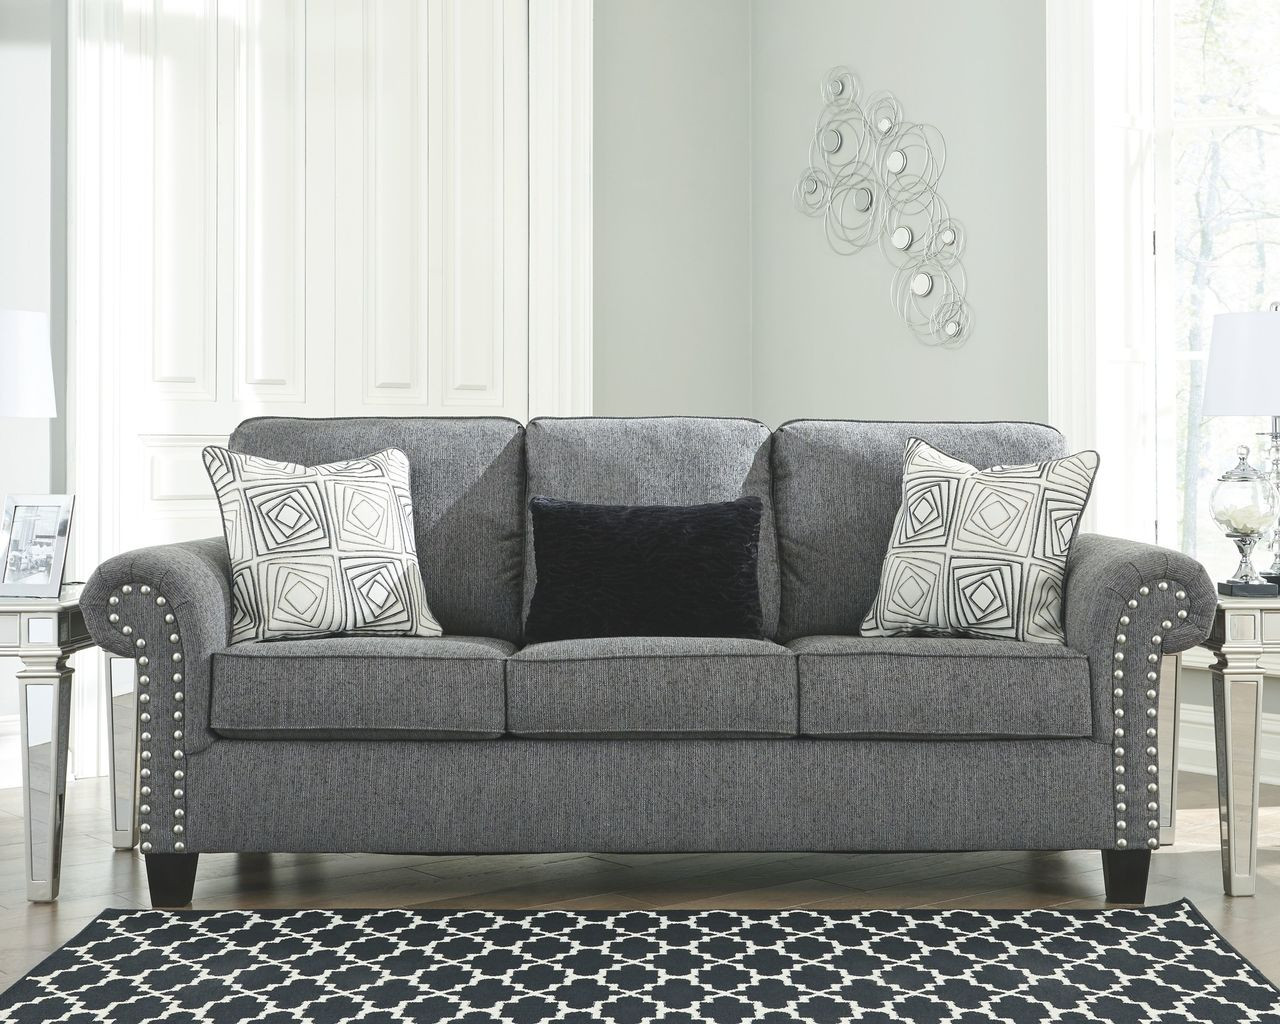 Awesome Ashley Agleno Charcoal Sofa Couch Gmtry Best Dining Table And Chair Ideas Images Gmtryco